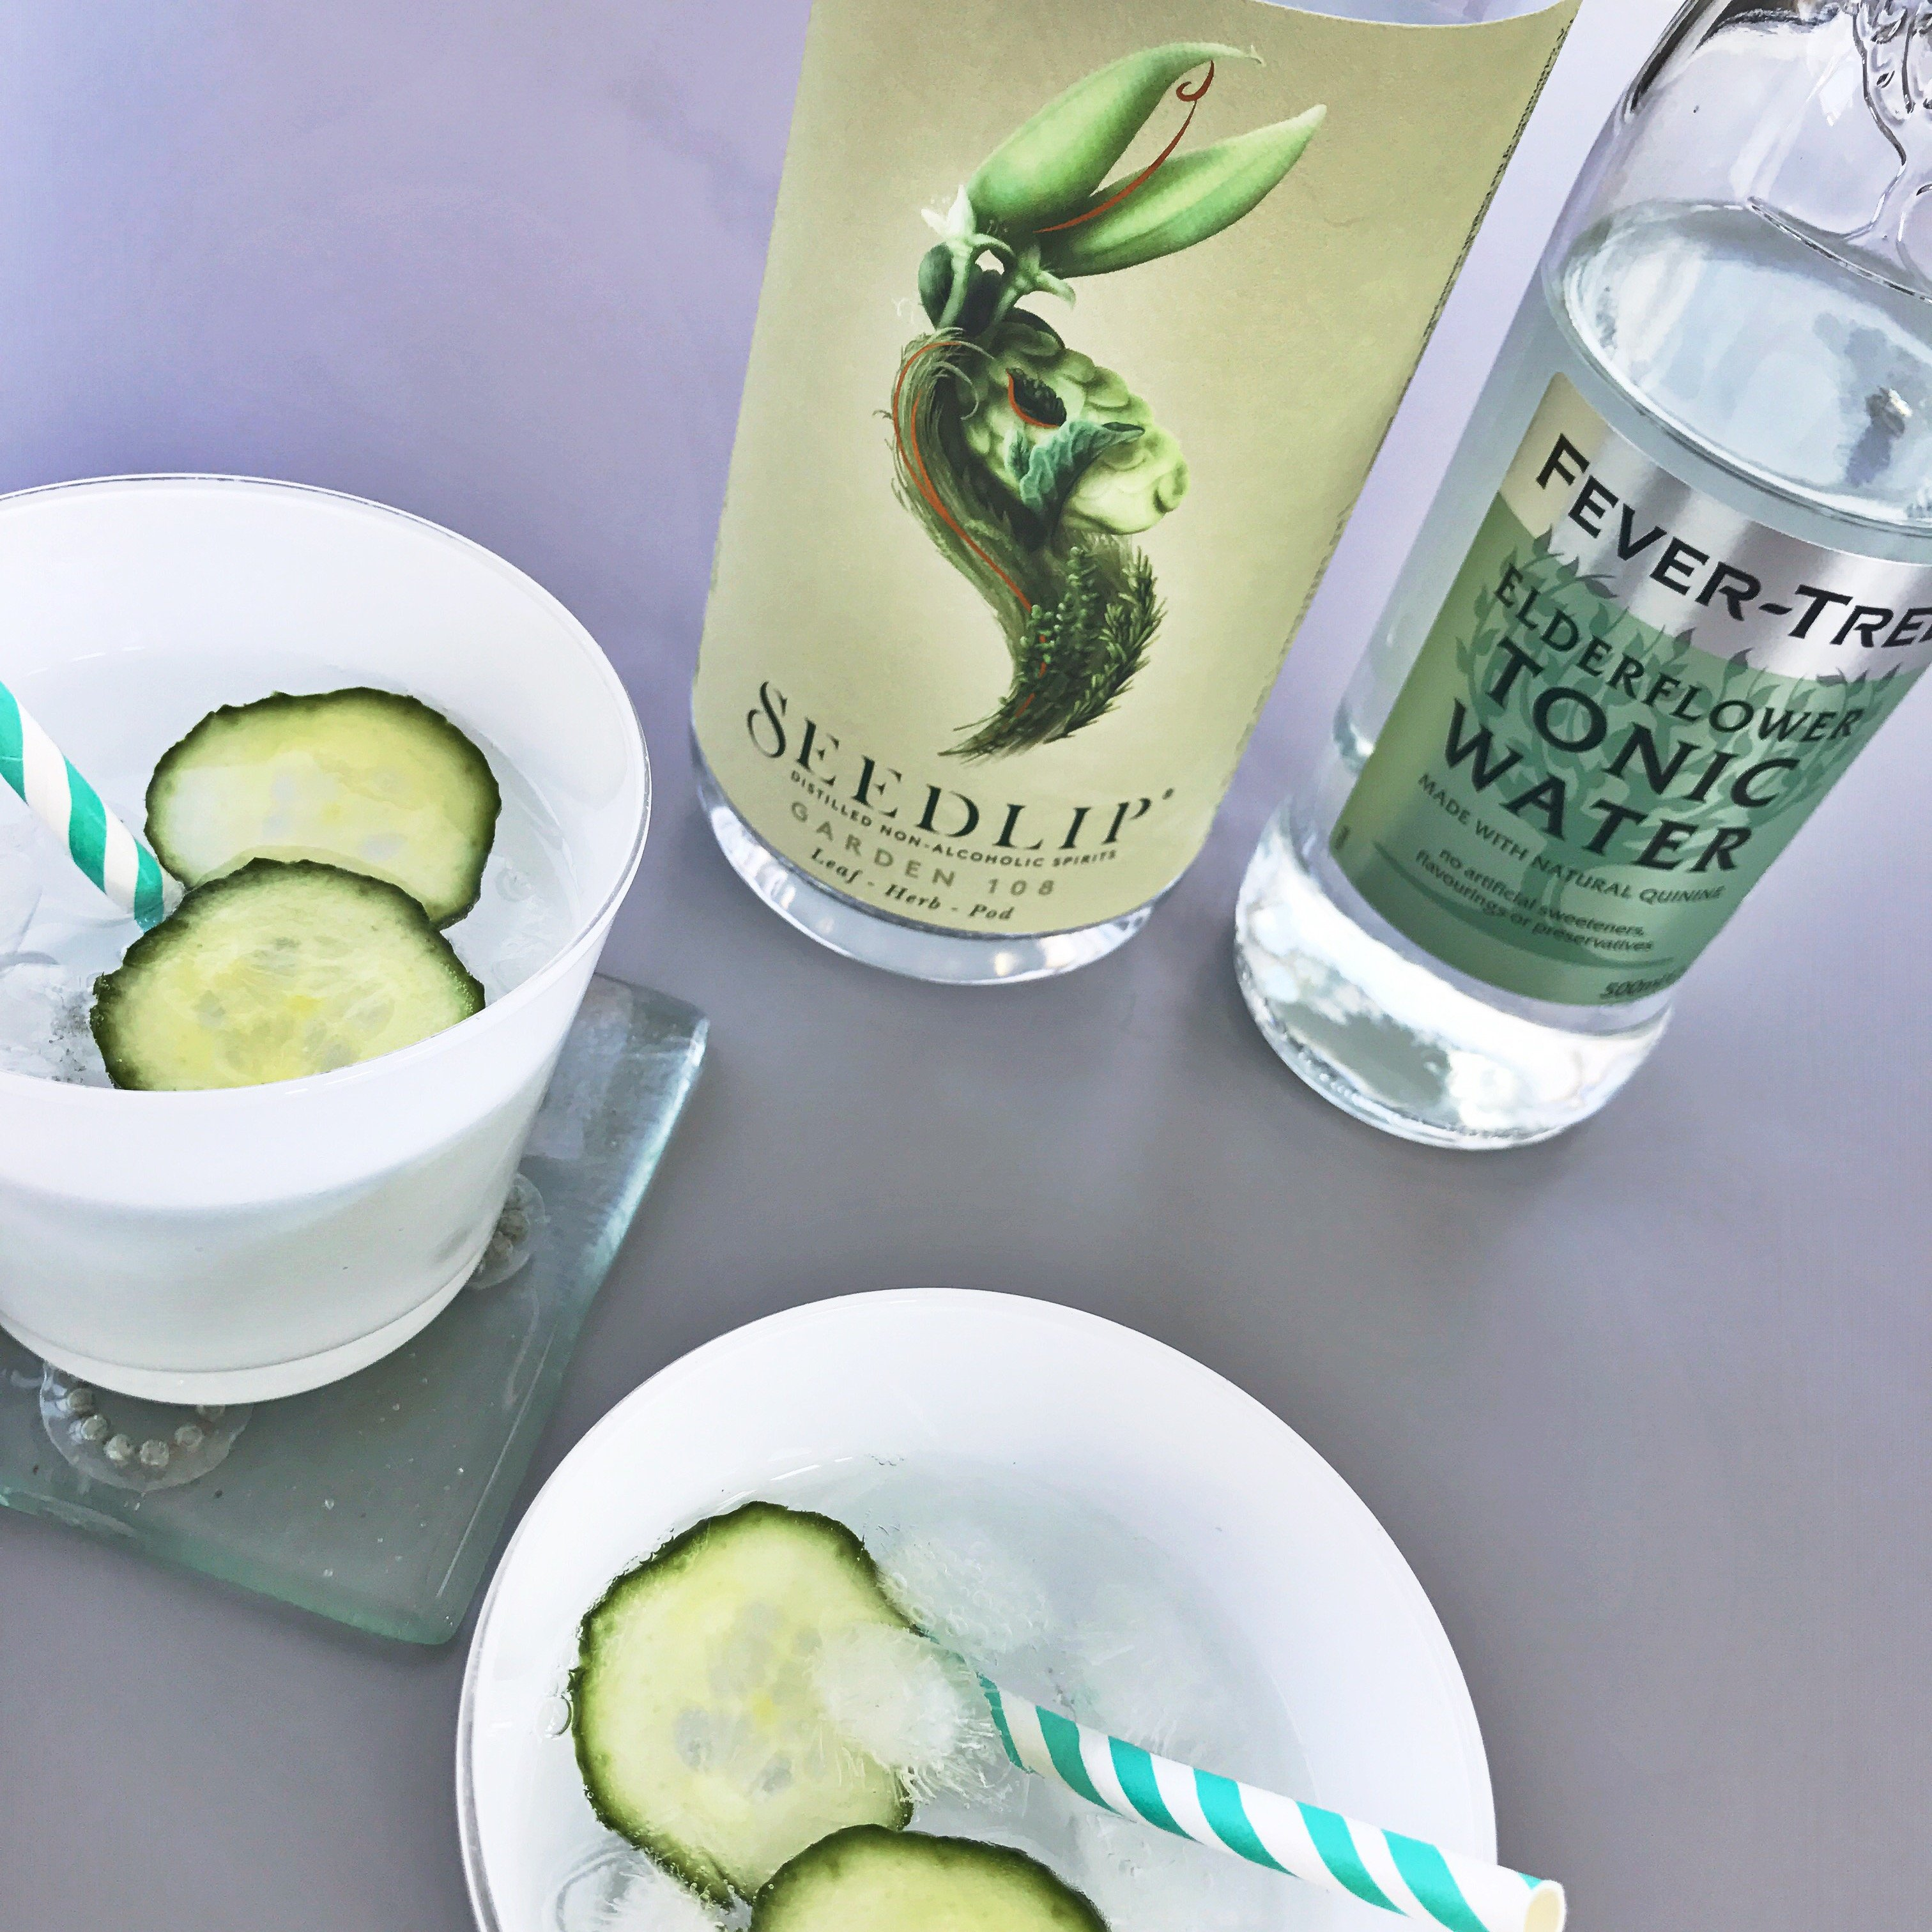 Dry January drink, Seedlip Garden Spirit with Elderflower Tonic Water, Non Alcoholic party drinks, alcohol free drinks